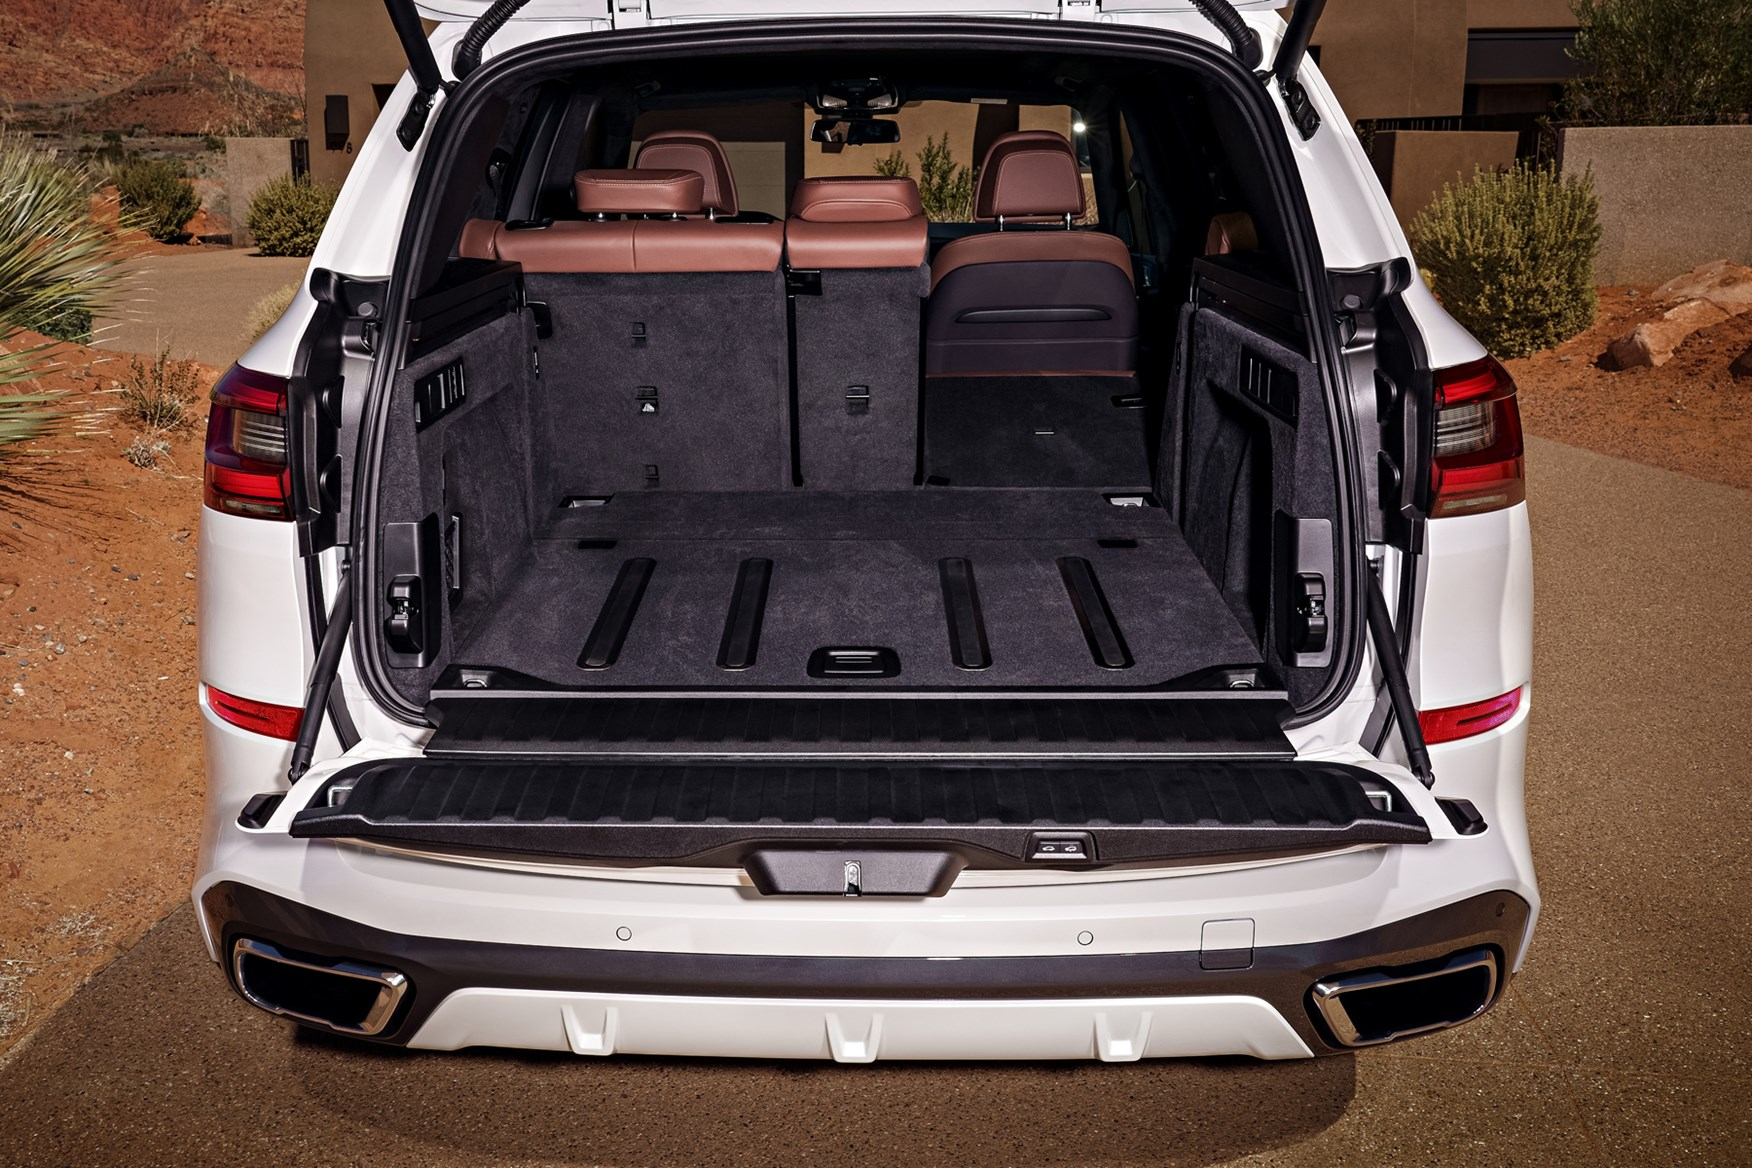 The 2018 BMW X5 has a powered split tailgate